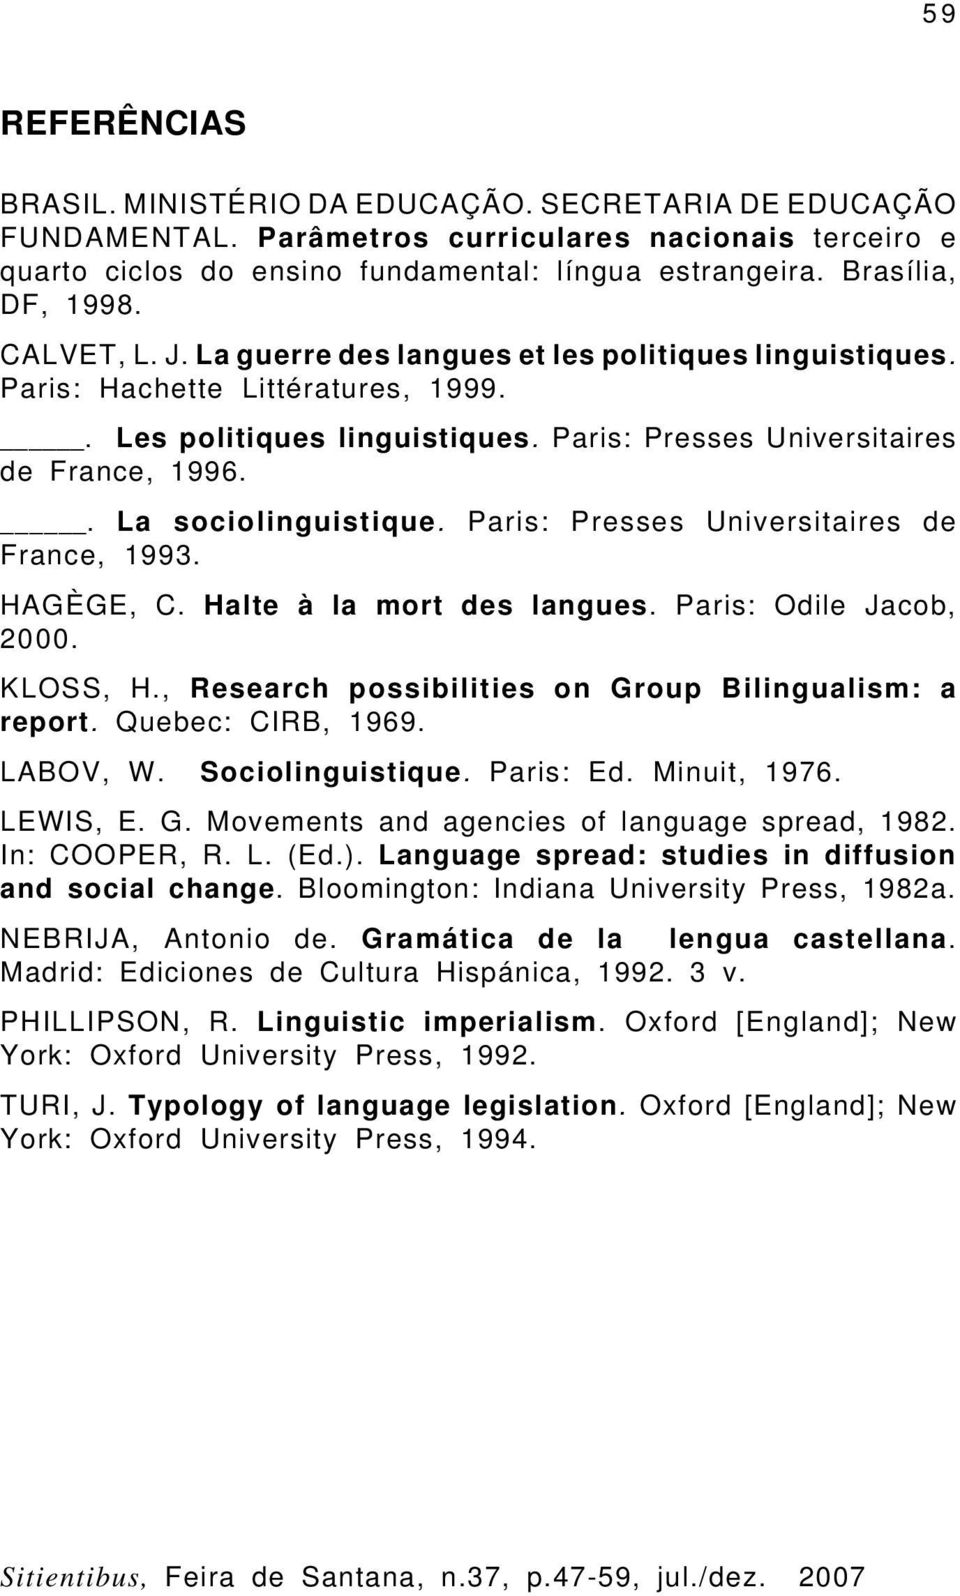 Paris: Presses Universitaires de France, 1996.. La sociolinguistique. Paris: Presses Universitaires de France, 1993. HAGÈGE, C. Halte à la mort des langues. Paris: Odile Jacob, 2000. KLOSS, H.